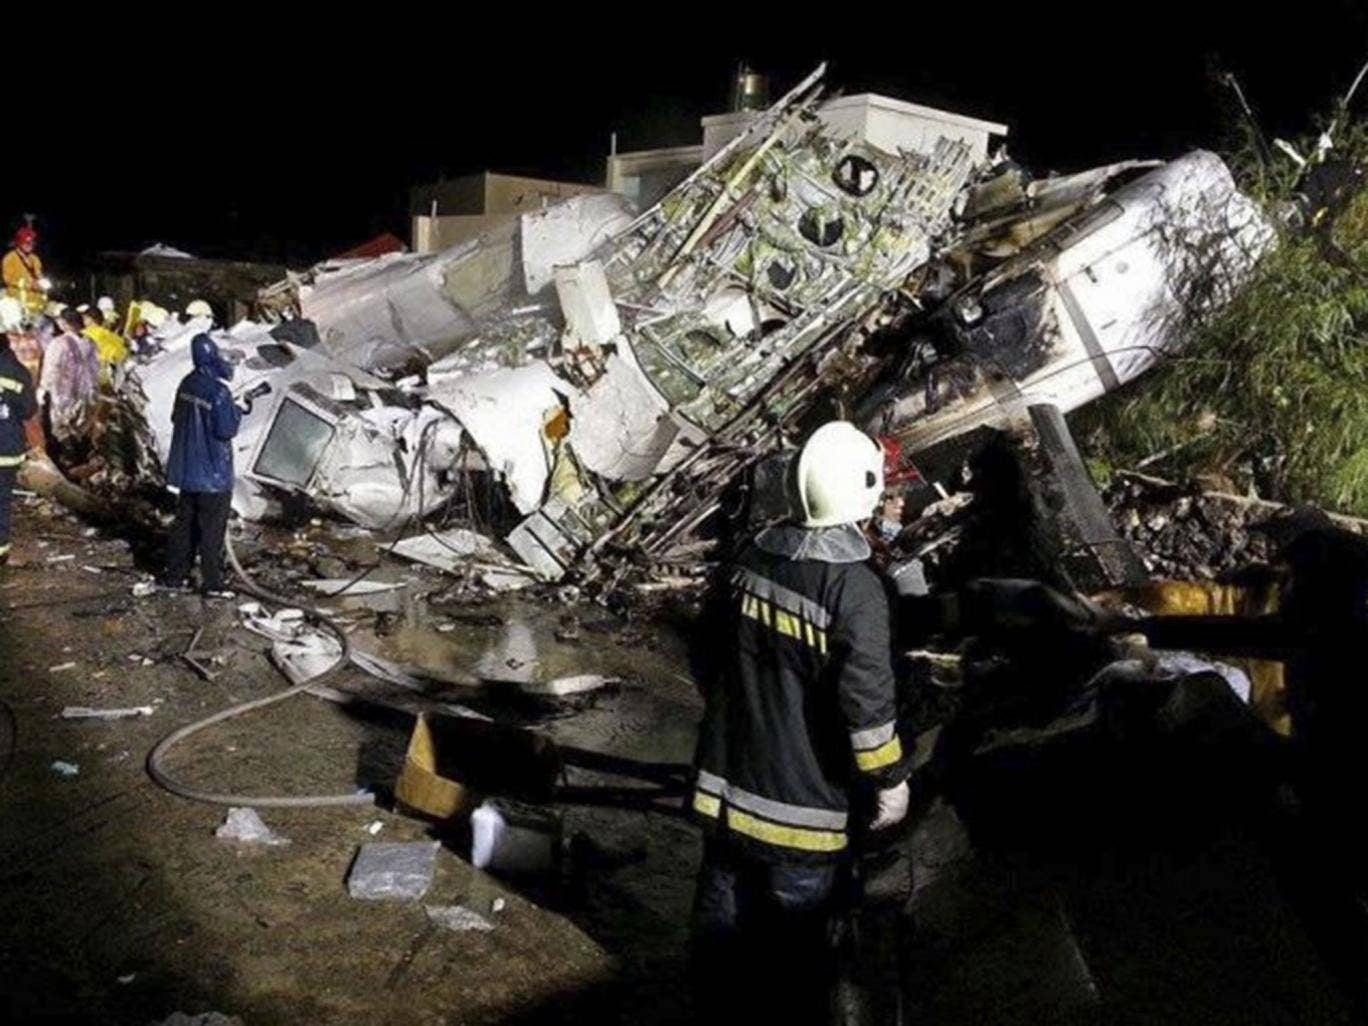 Rescue workers survey the wreckage of TransAsia Airways flight GE222 which crashed while attempting to land in stormy weather on the Taiwanese island of Penghu, late Wednesday, July 23, 2014. A transport minister said dozens of people were trapped and fea